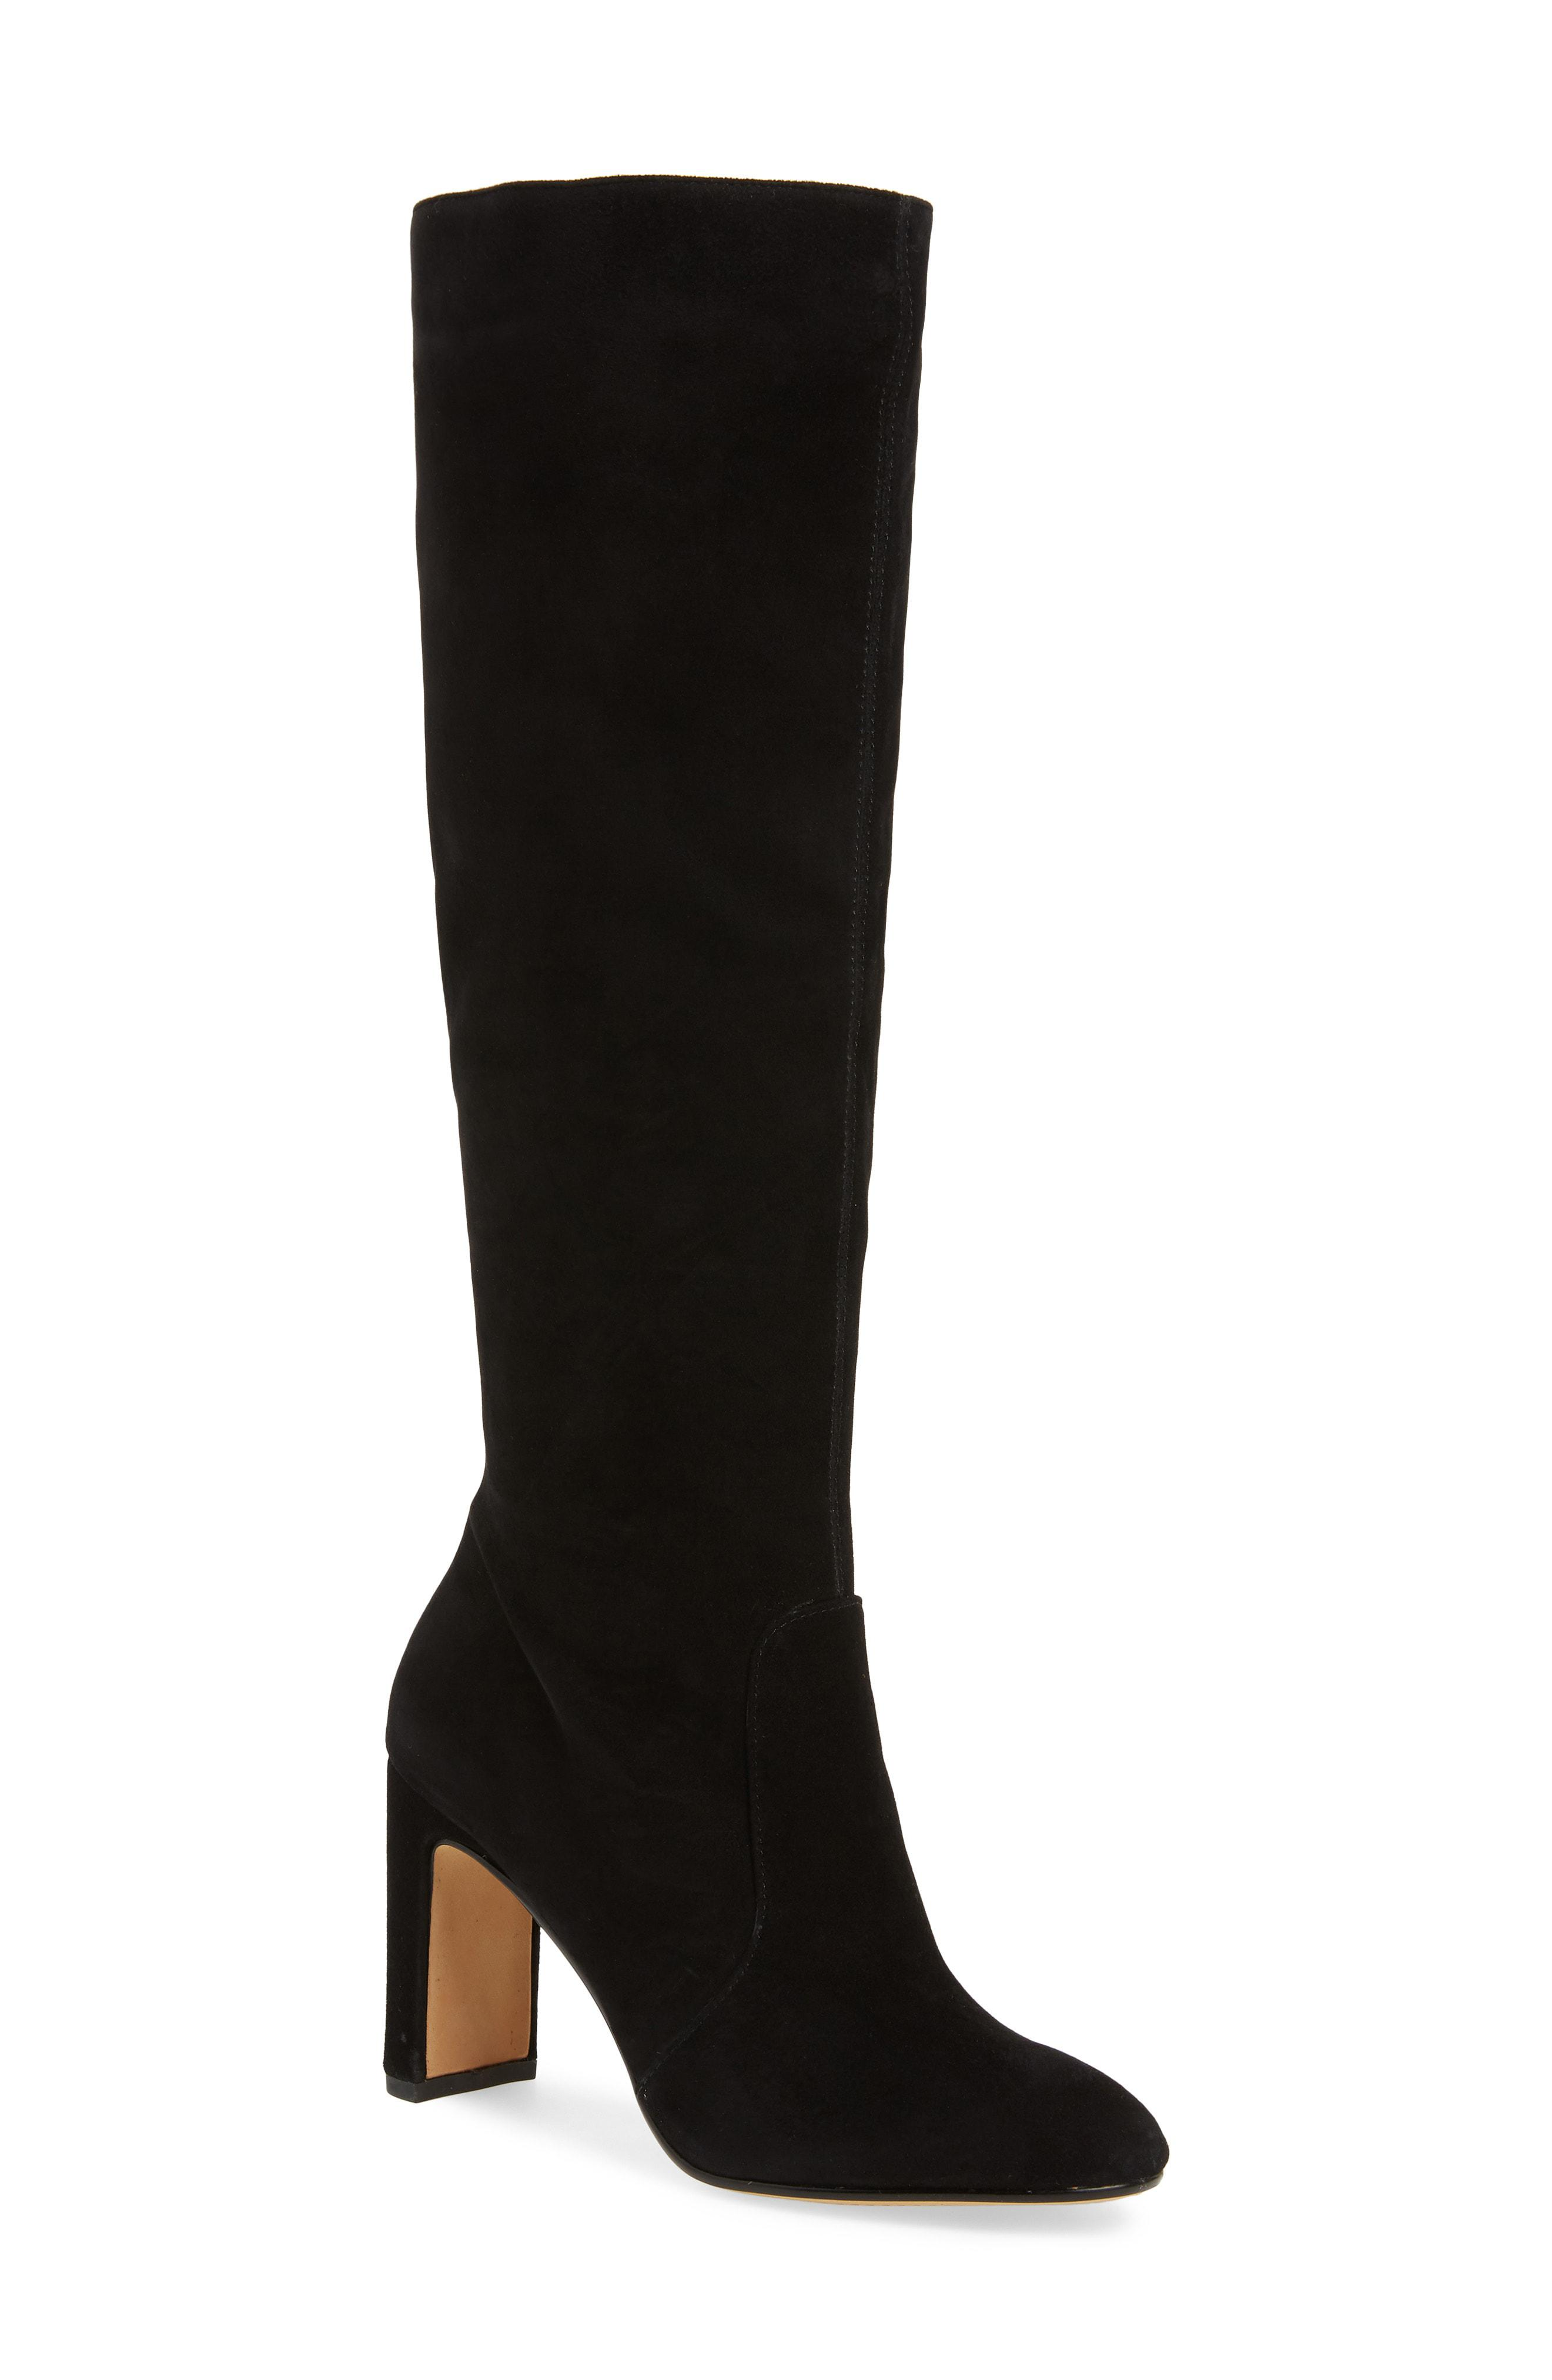 59f88df8ffa Lyst - Dolce Vita Coop Suede Slouch Boots in Black - Save 0.5%